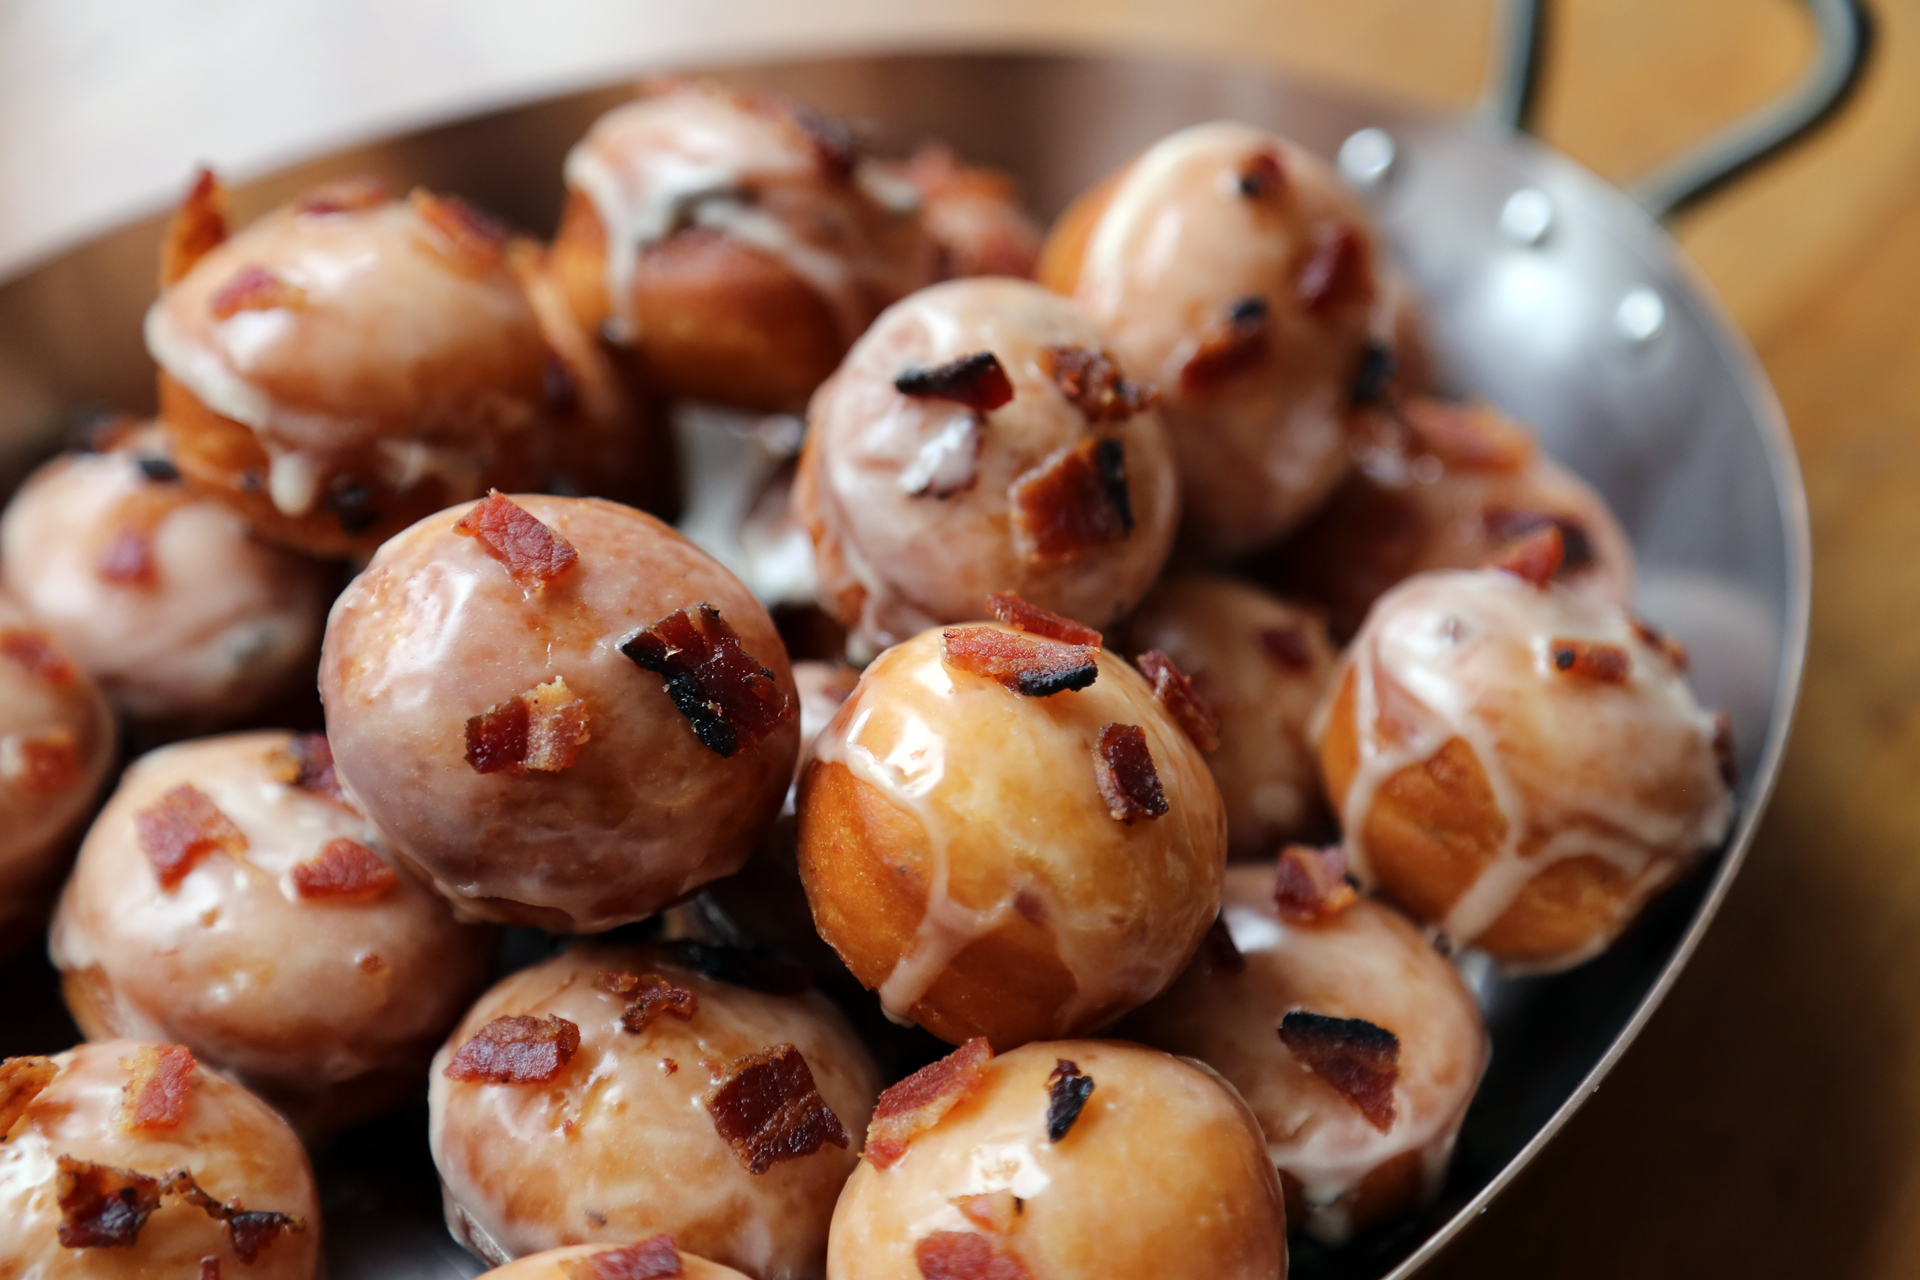 Maple Bacon Donut Holes